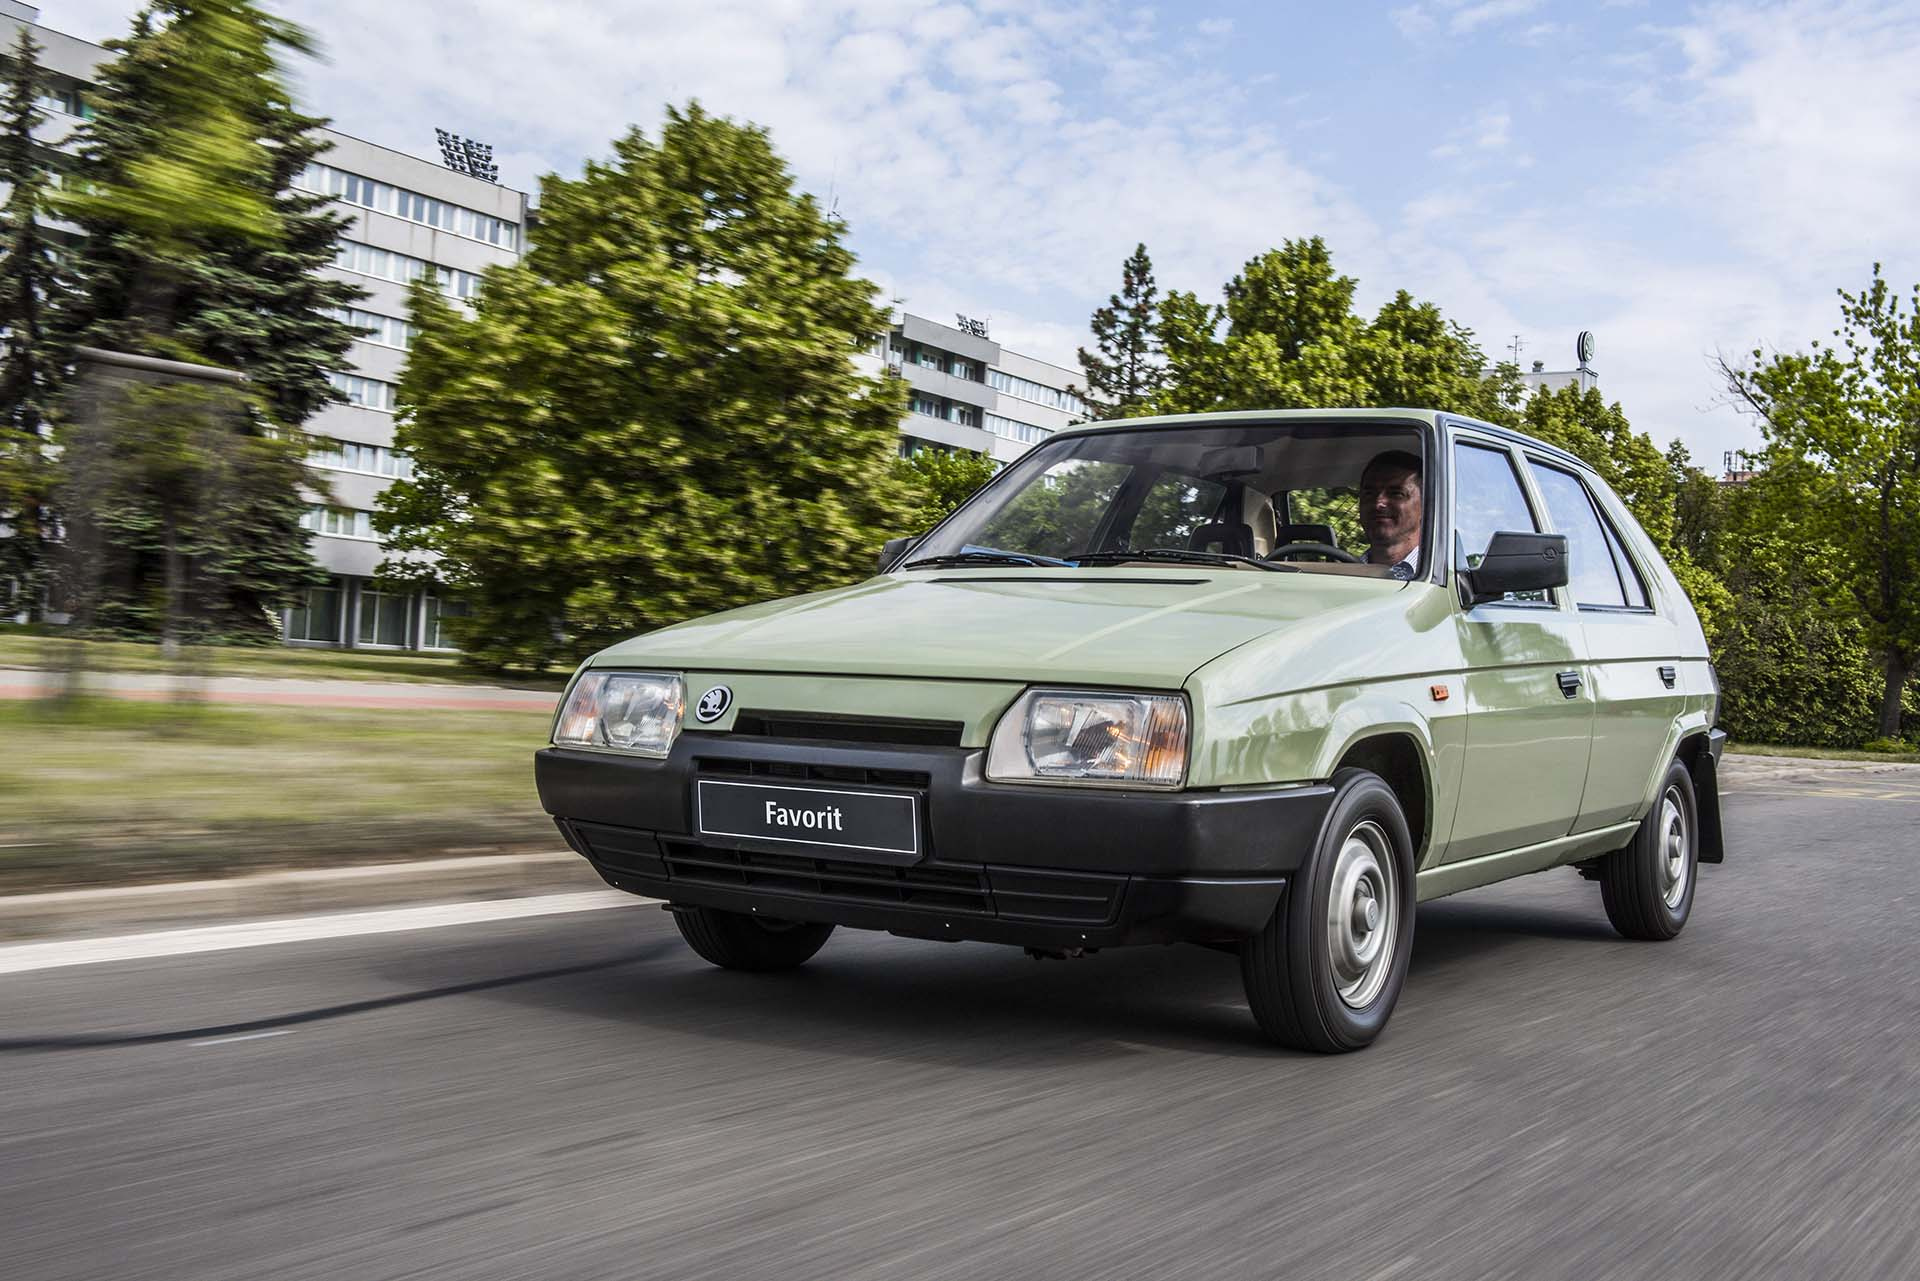 SKODA FAVORIT Entering an era of success 30 years ago 10